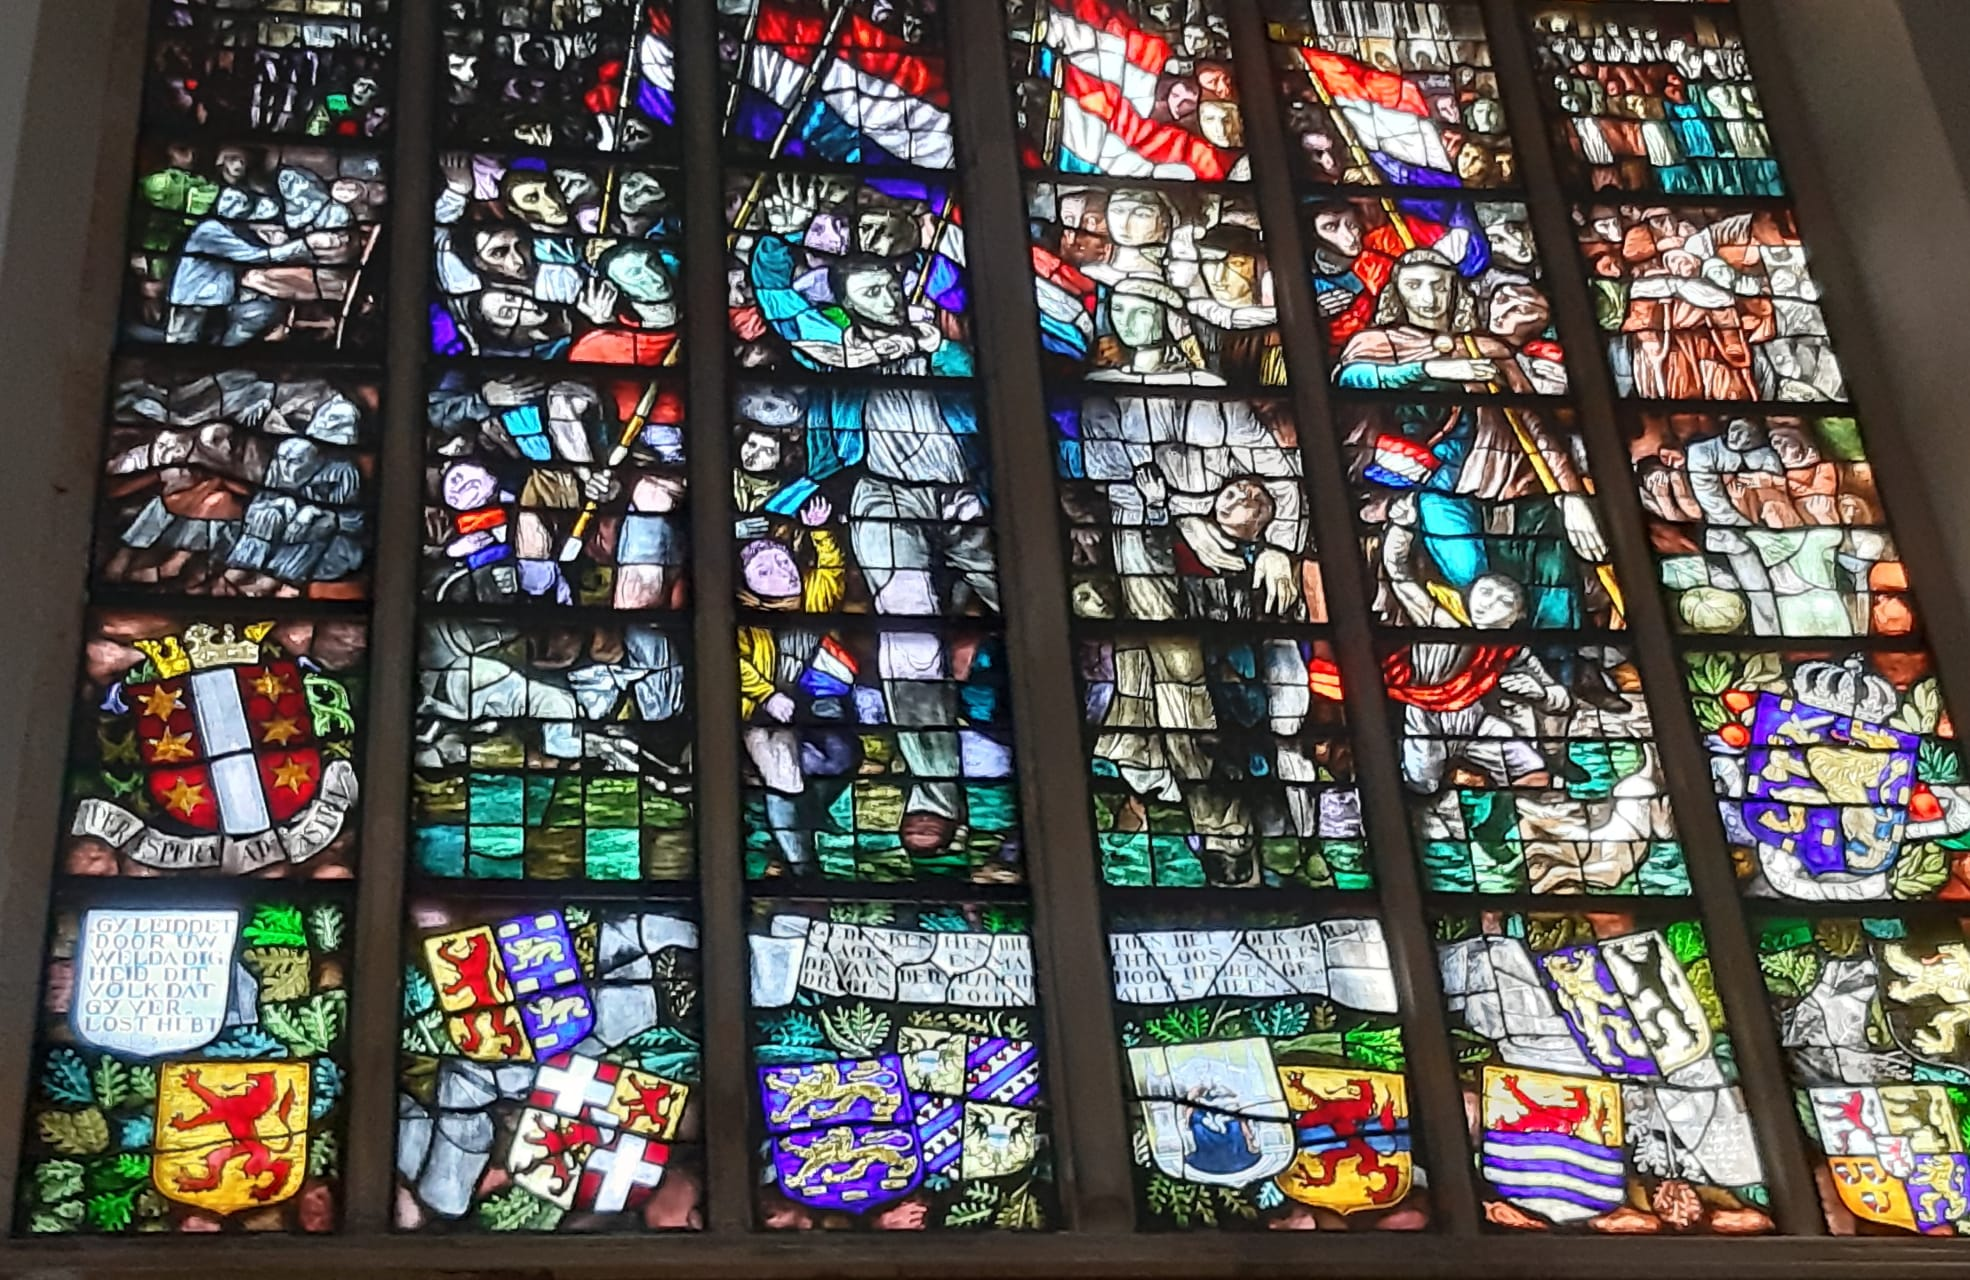 Gouda - The most beautiful church of the Netherlands.